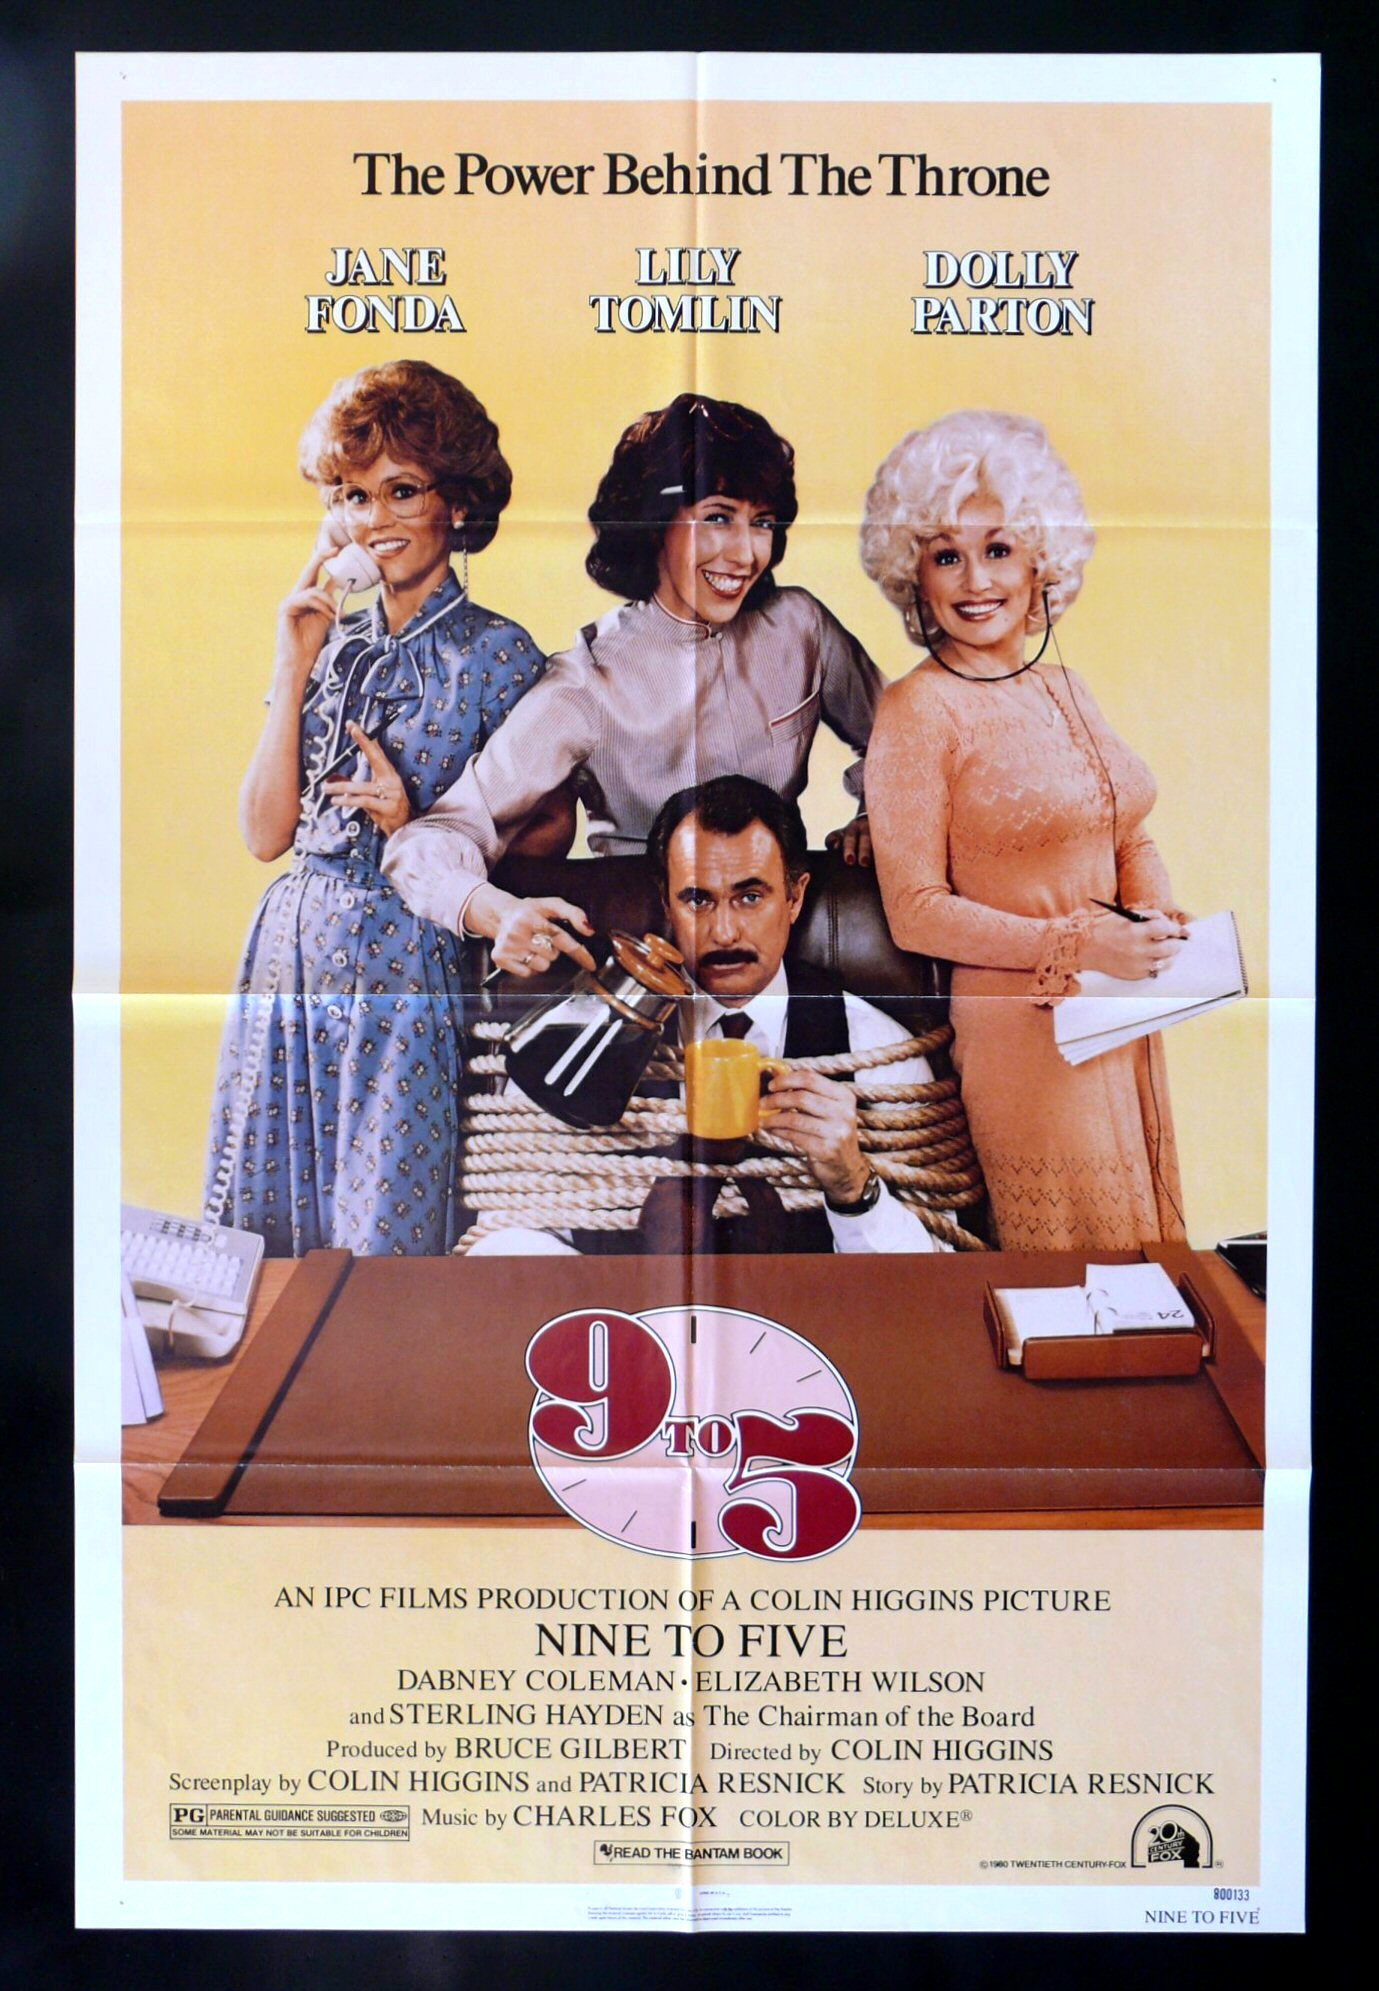 9 to 5 1980 dolly parton  jane